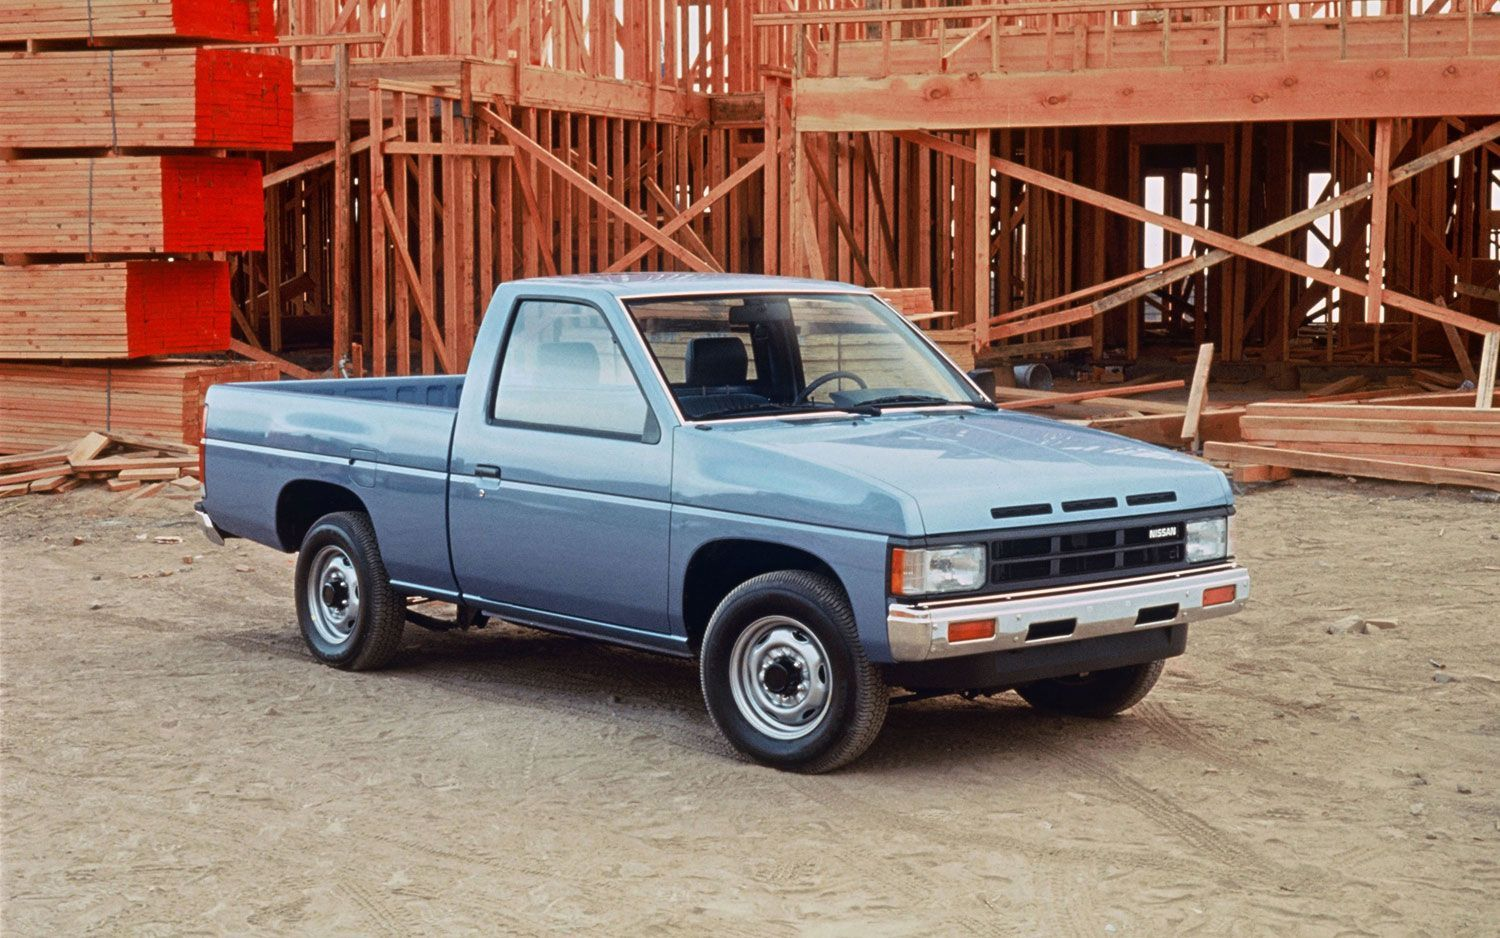 Nissan Small Truck Pickup Trucks Check More At Http Besthostingg